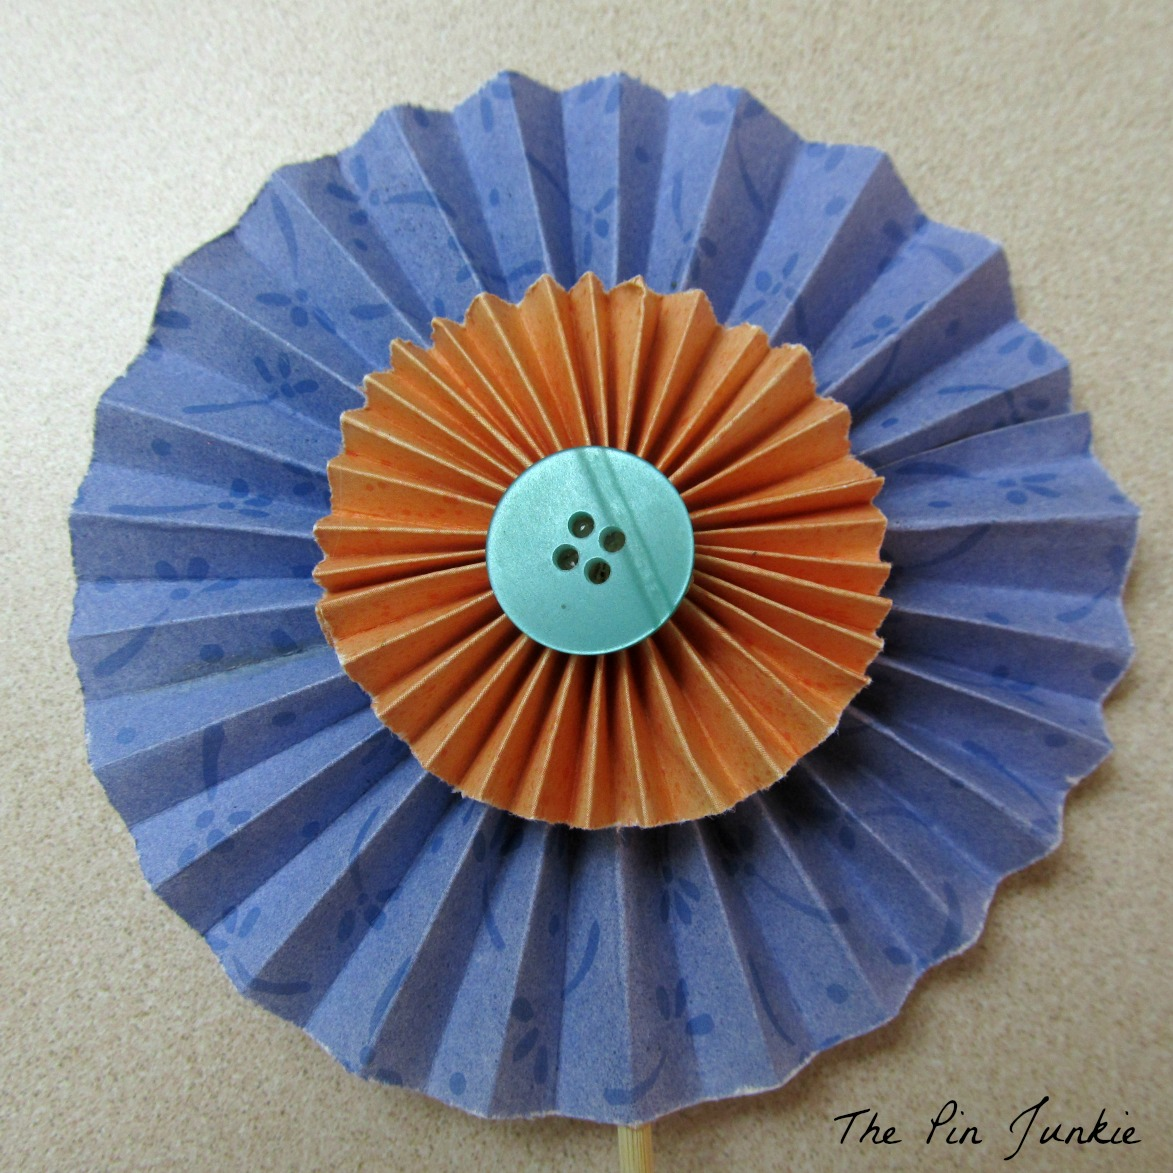 The pin junkie how to make paper bluebonnets - Easy To Make Folded Paper Flowers